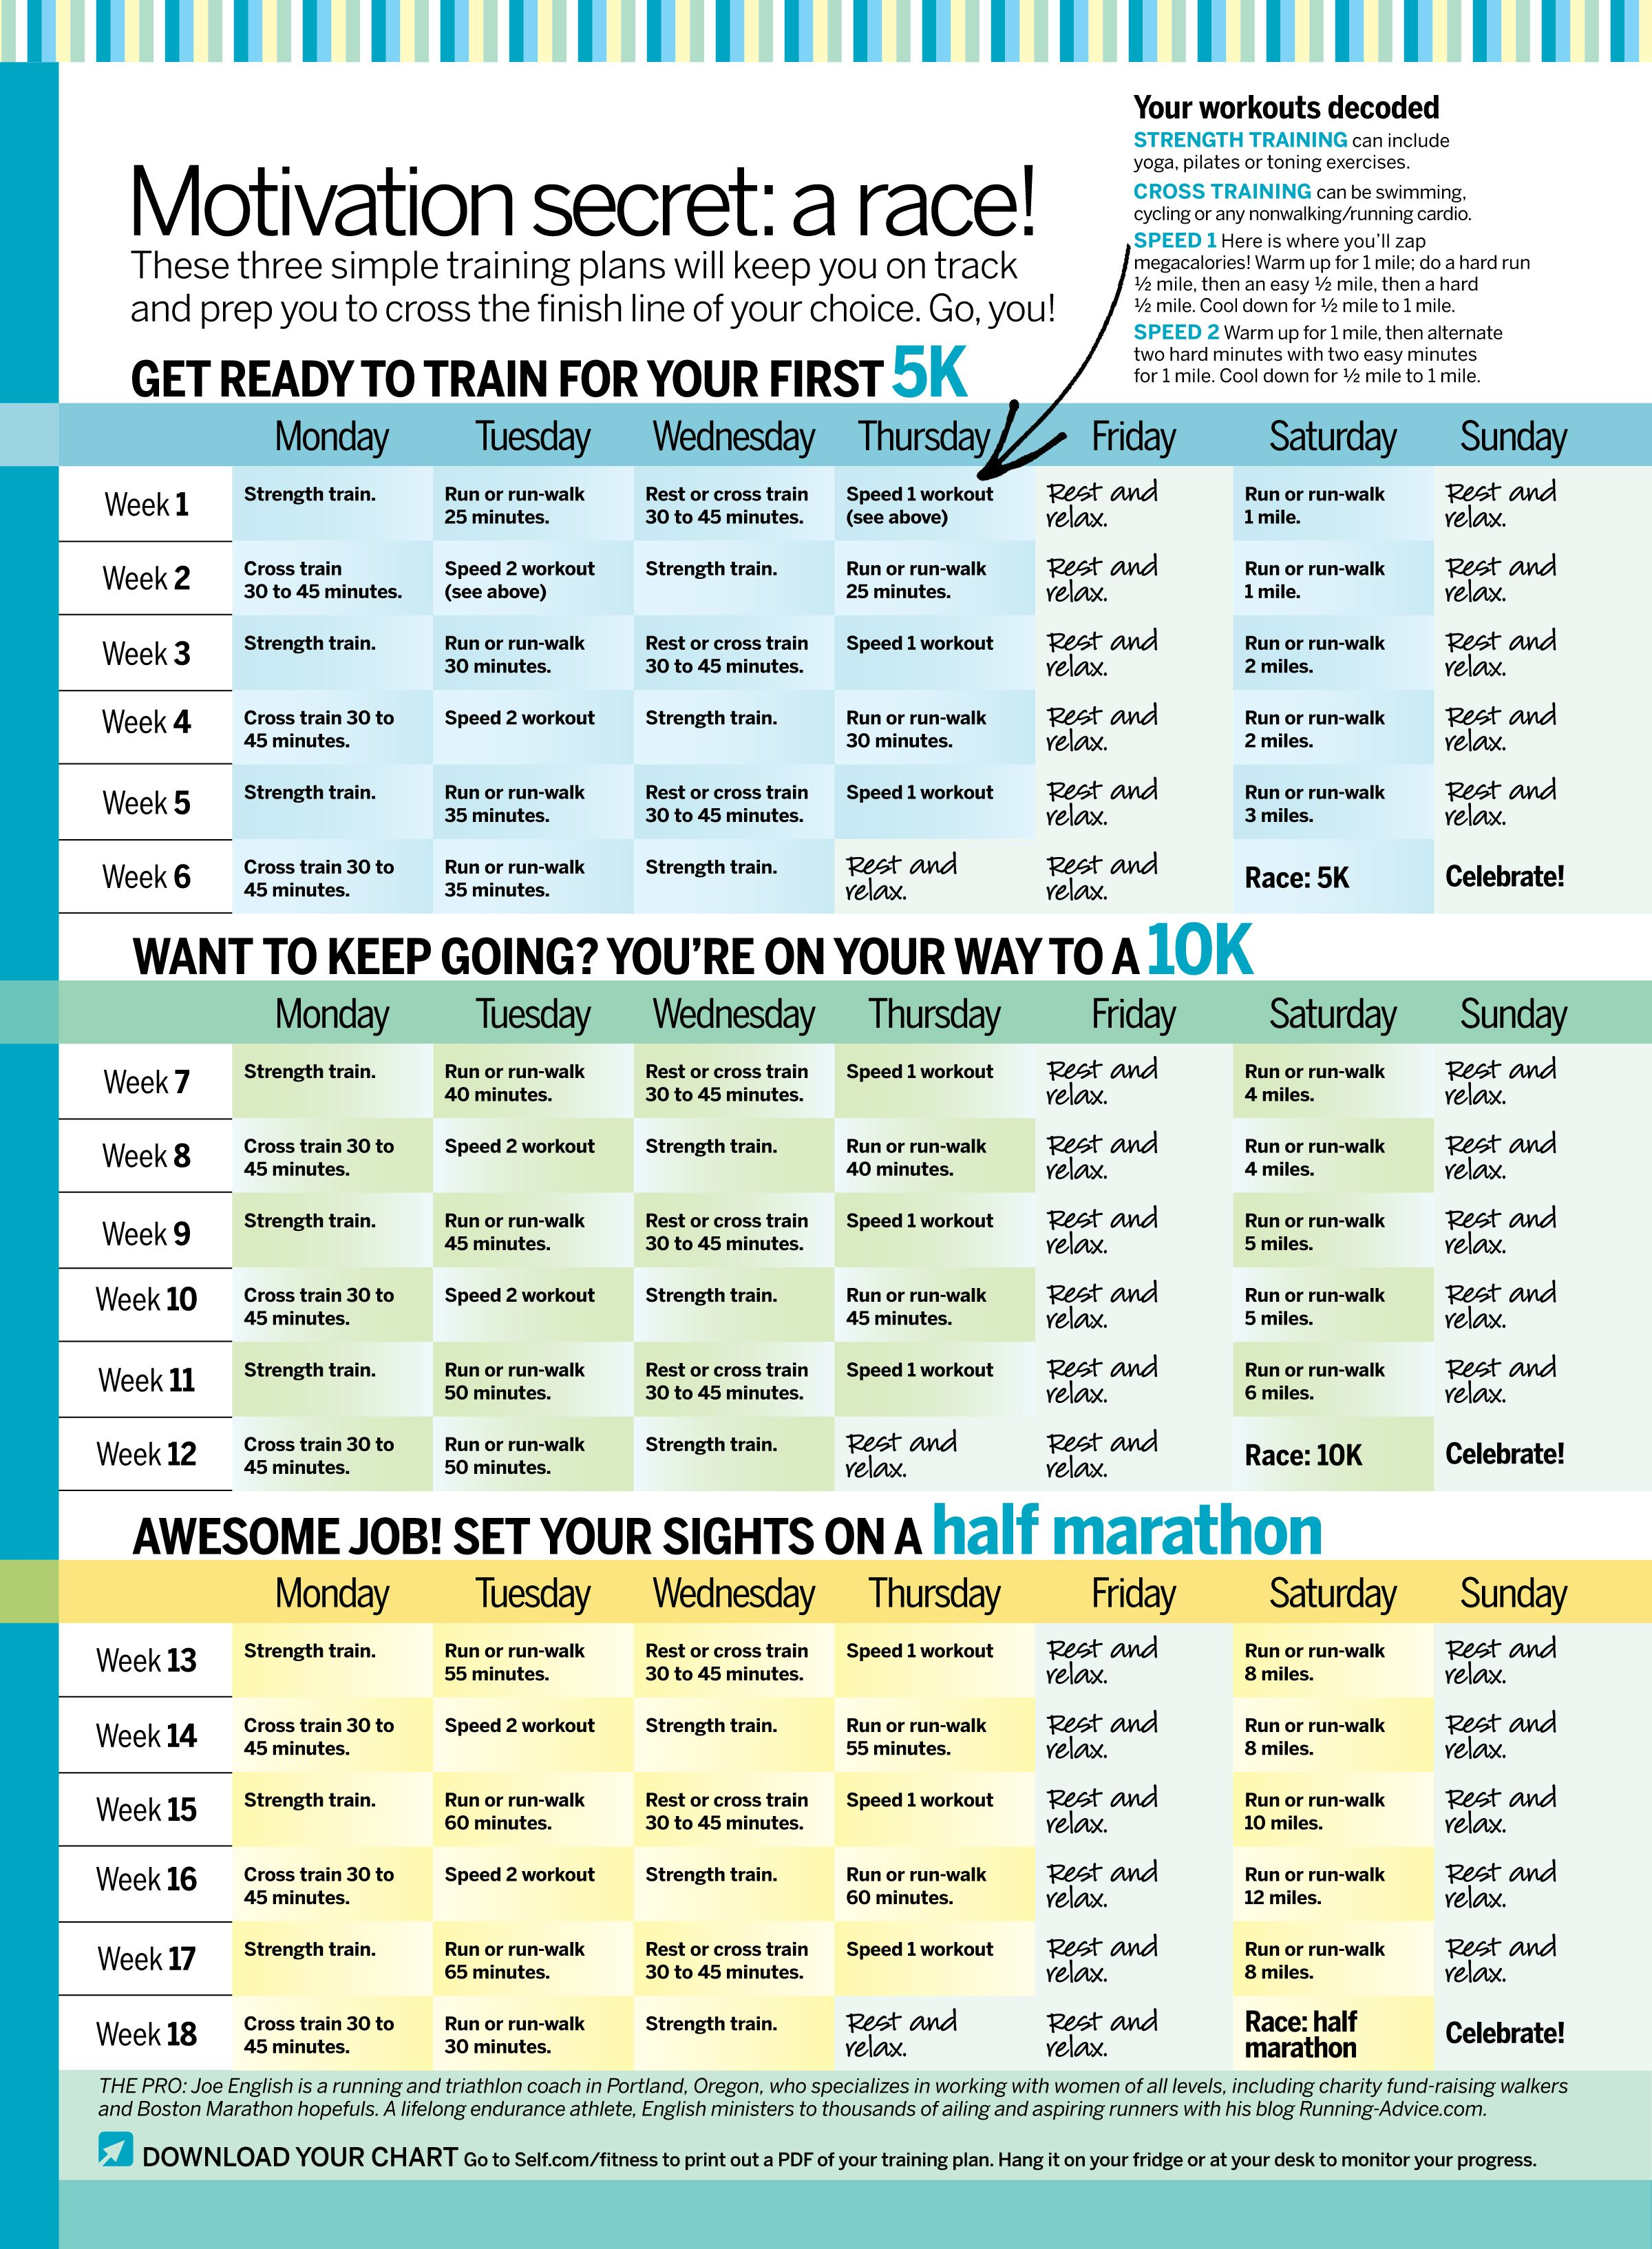 Really Like This Idea For Starting Out Running Break It